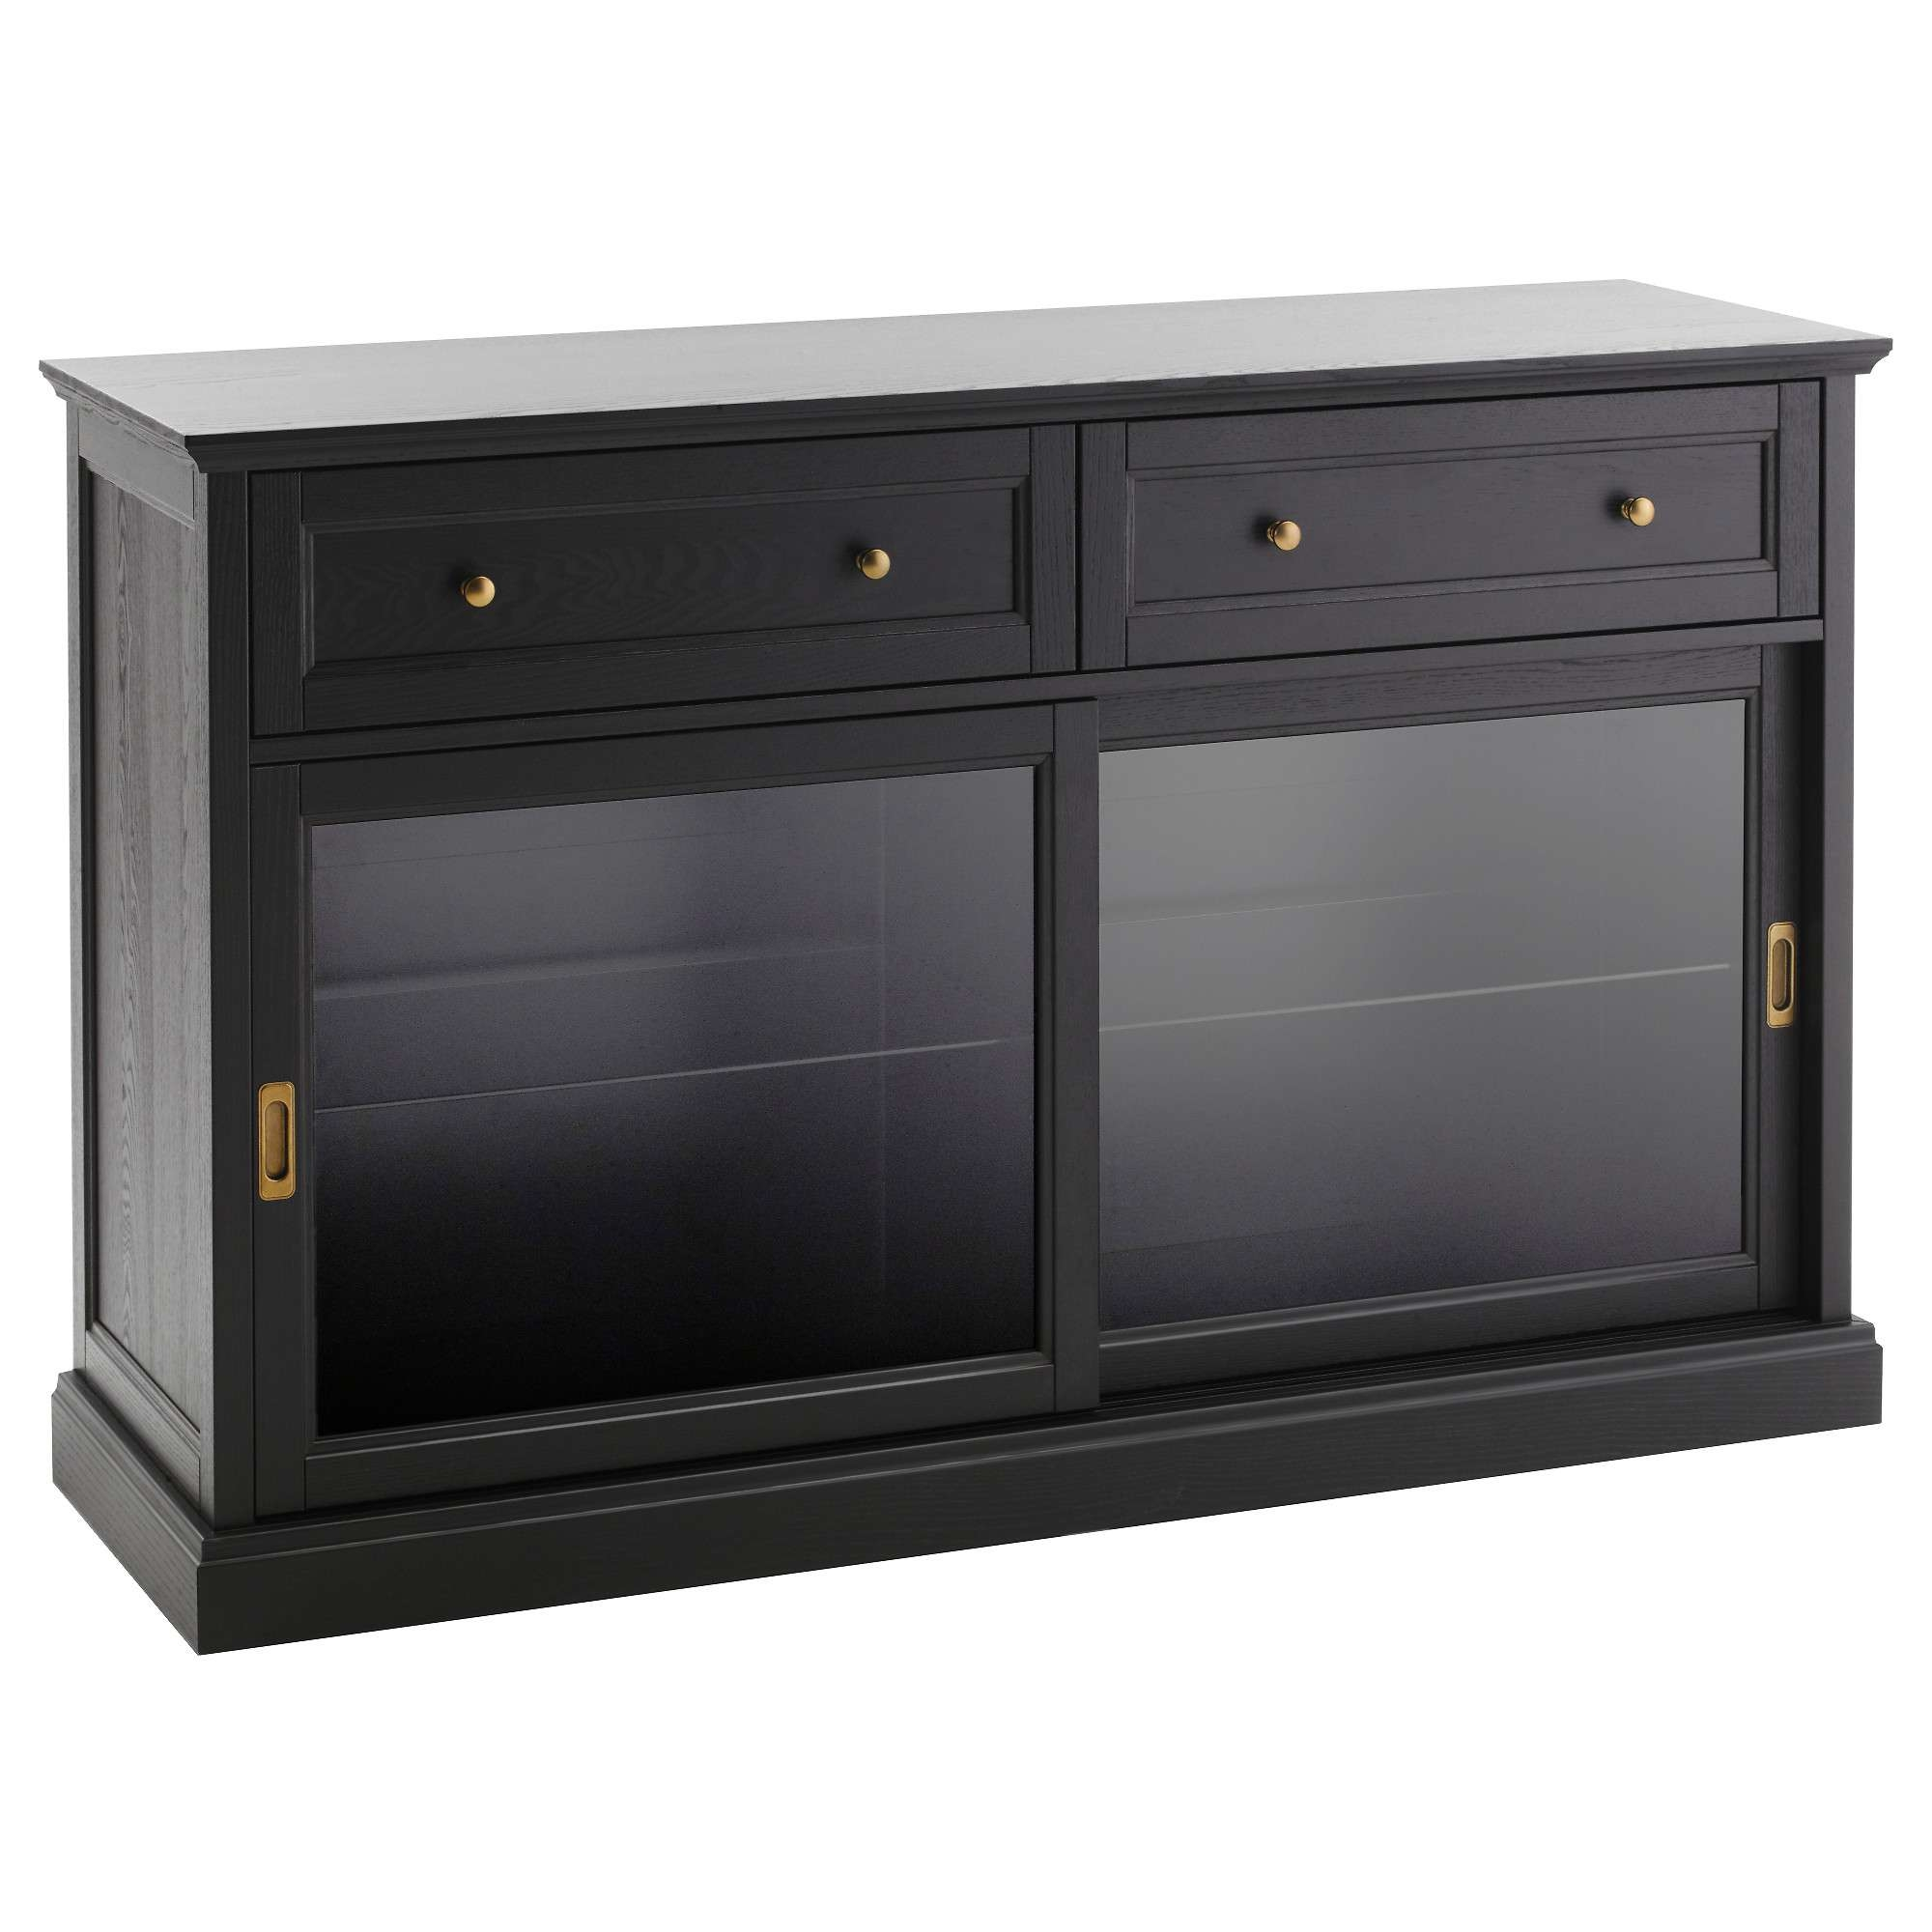 Sideboards & Buffet Cabinets | Ikea With Small Narrow Sideboards (View 18 of 20)